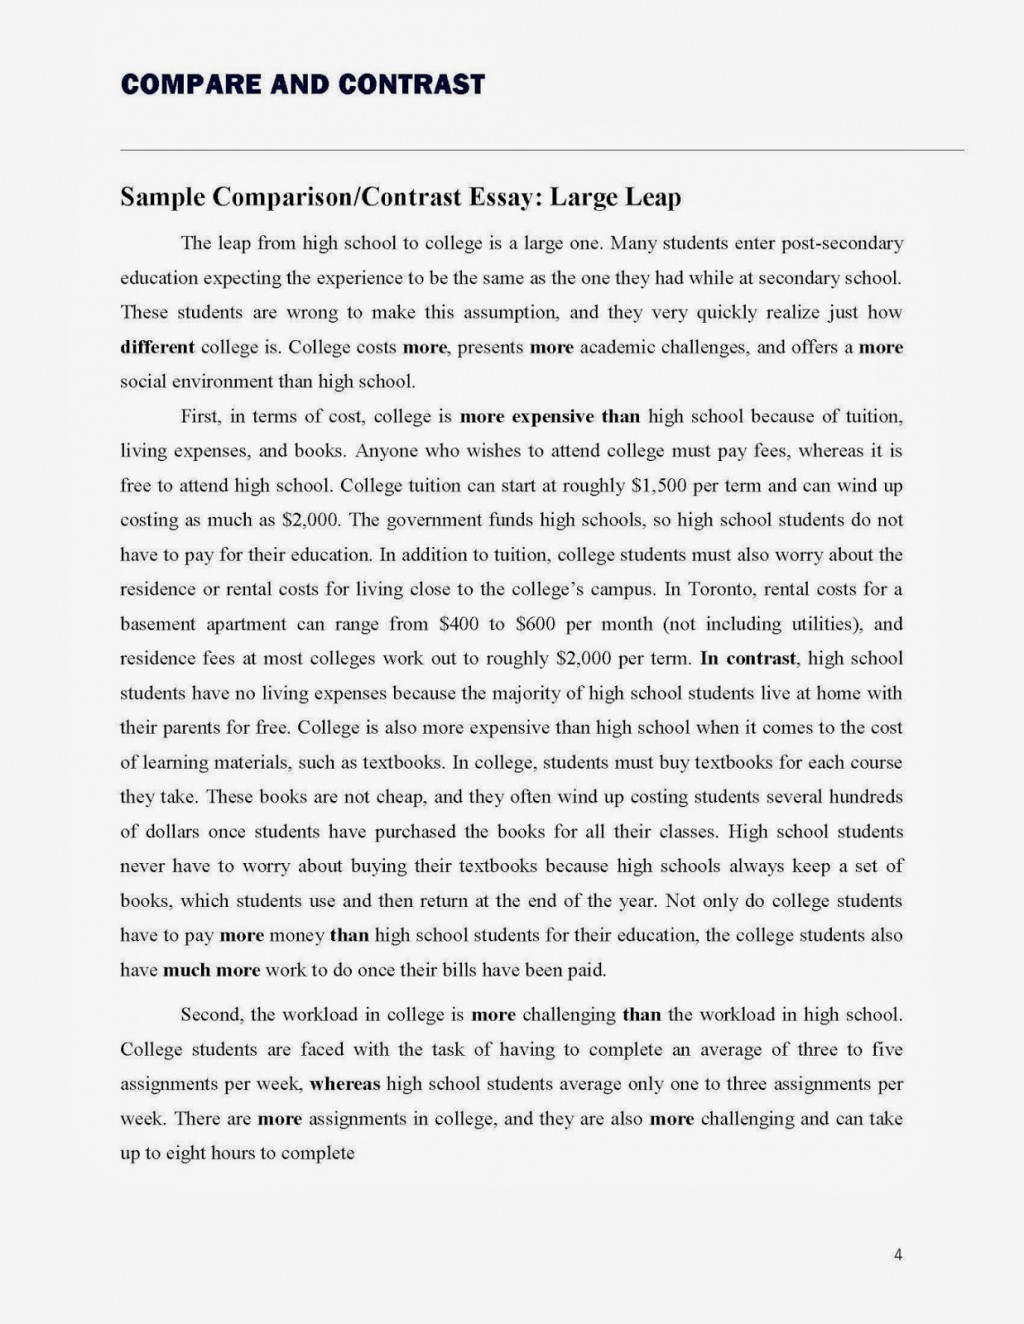 006 Comparison Contrast Essay Topics Example Compare20and20contrast20essay Page 4 Magnificent Compare For Esl Students Ielts Technology Large